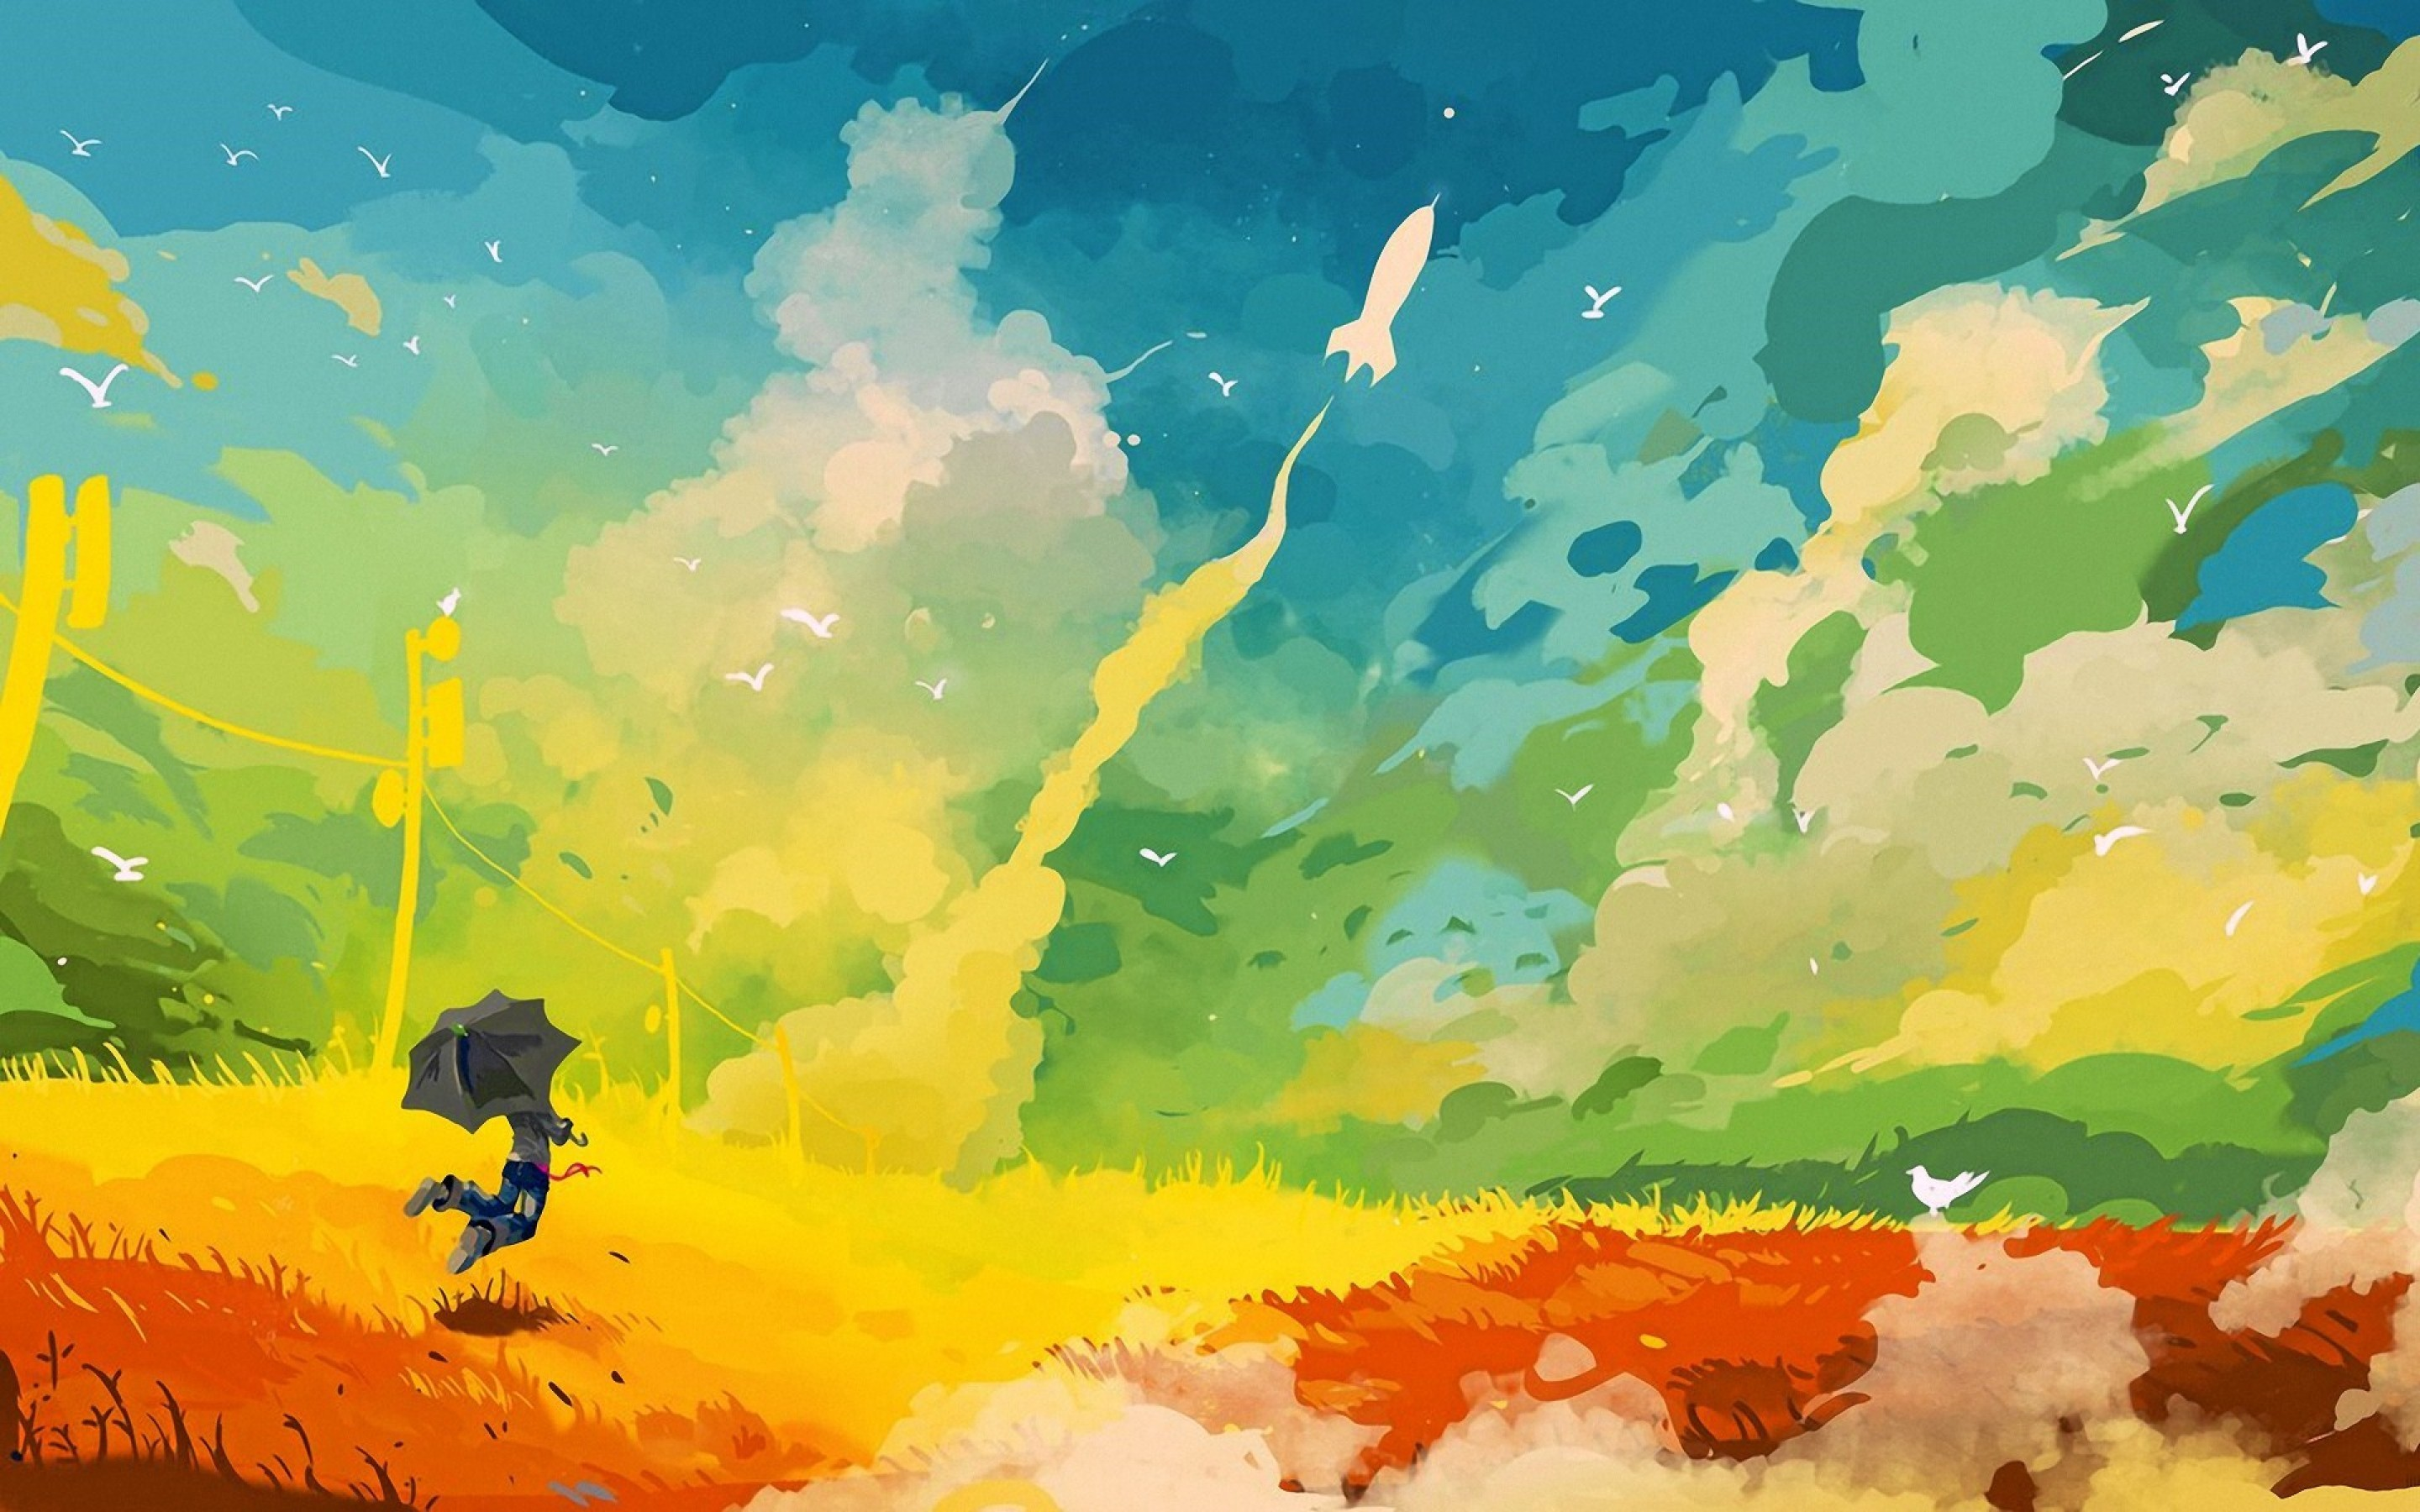 Res: 2880x1800, Painting High Quality Wallpaper #781326453